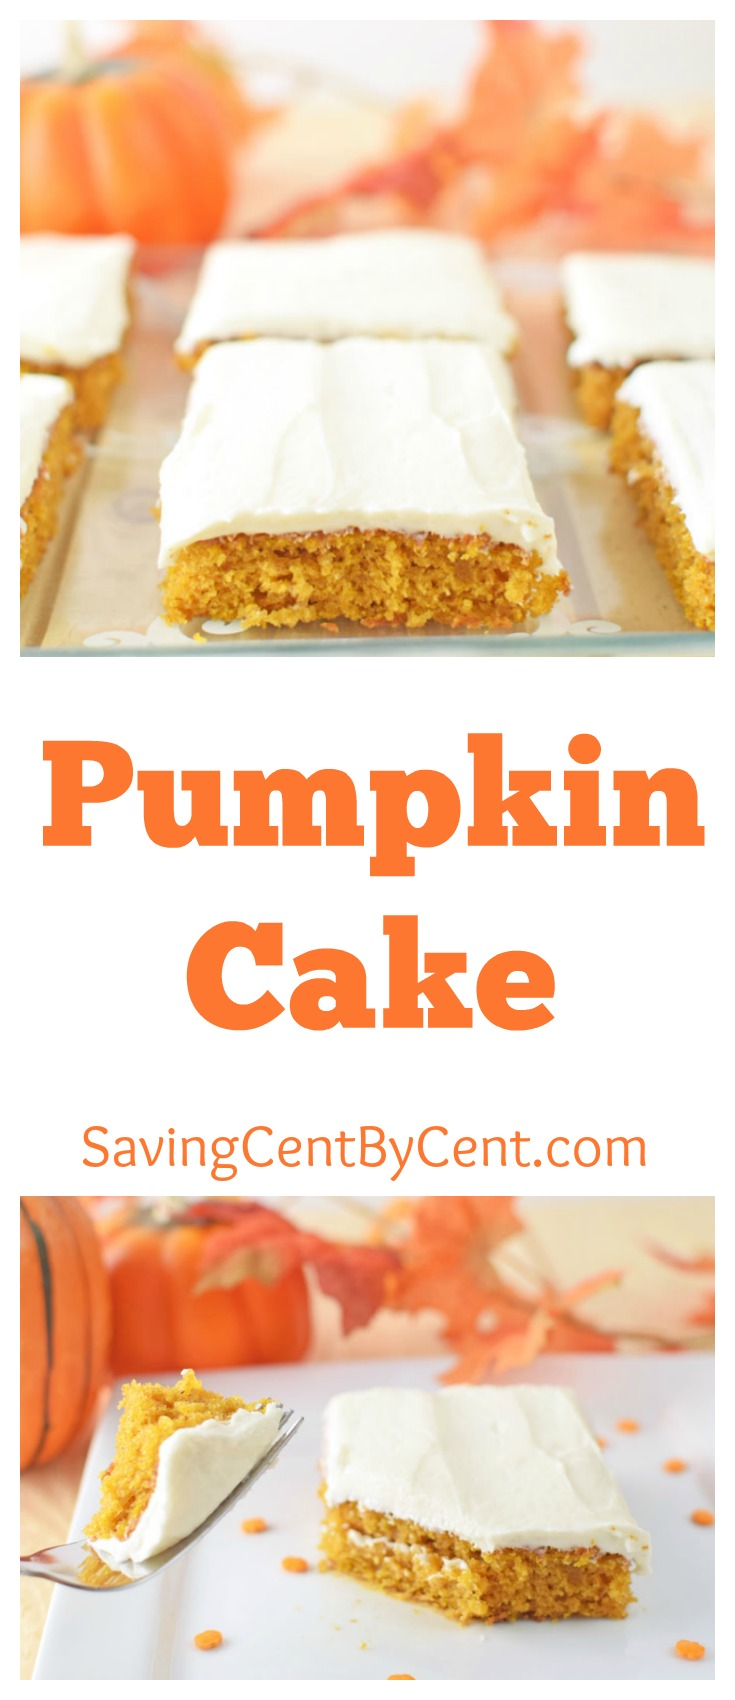 Pumpkin Cake with cream cheese frosting and butter frosting